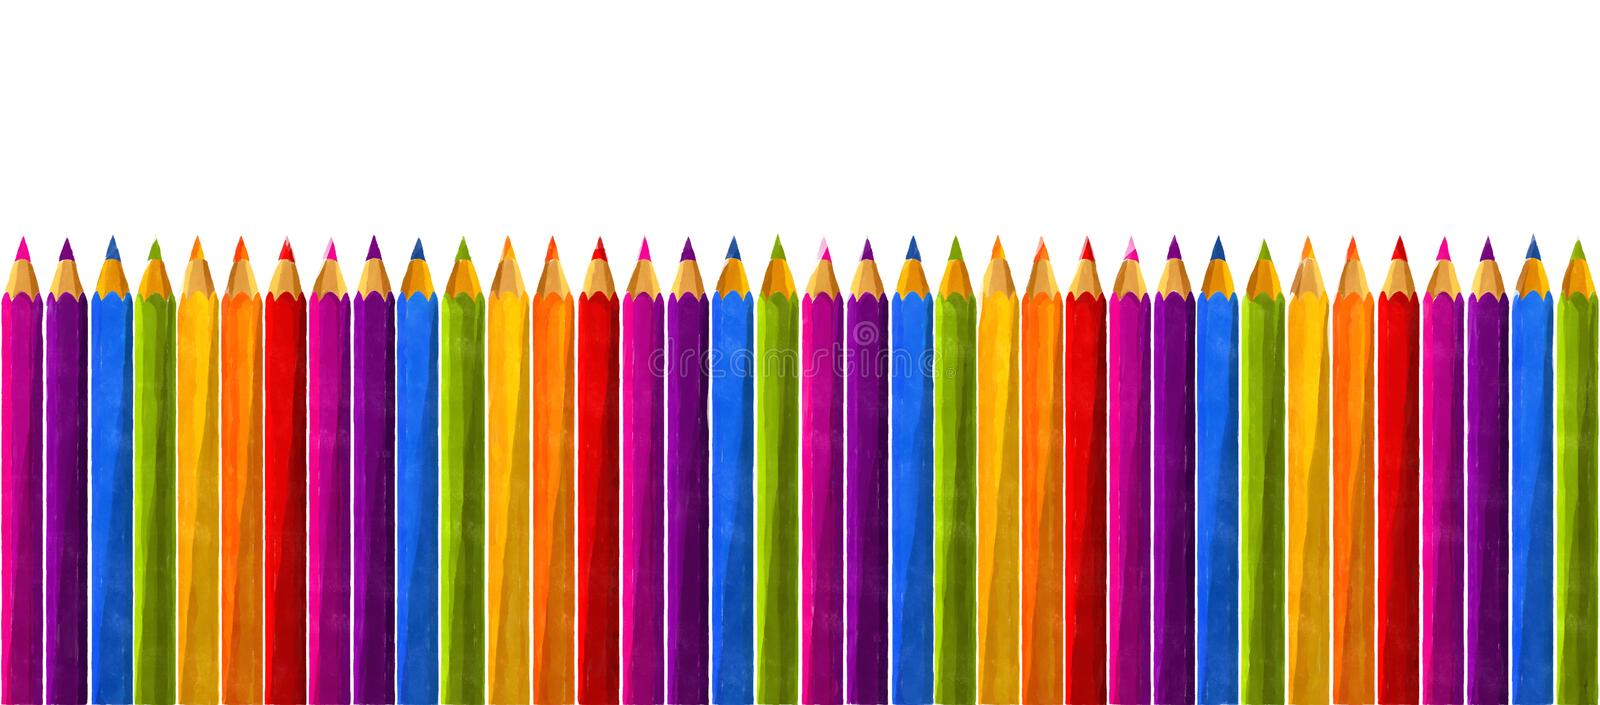 Rainbow watercolor pencils. Watercolor pencils in rainbow colors over white background stock illustration